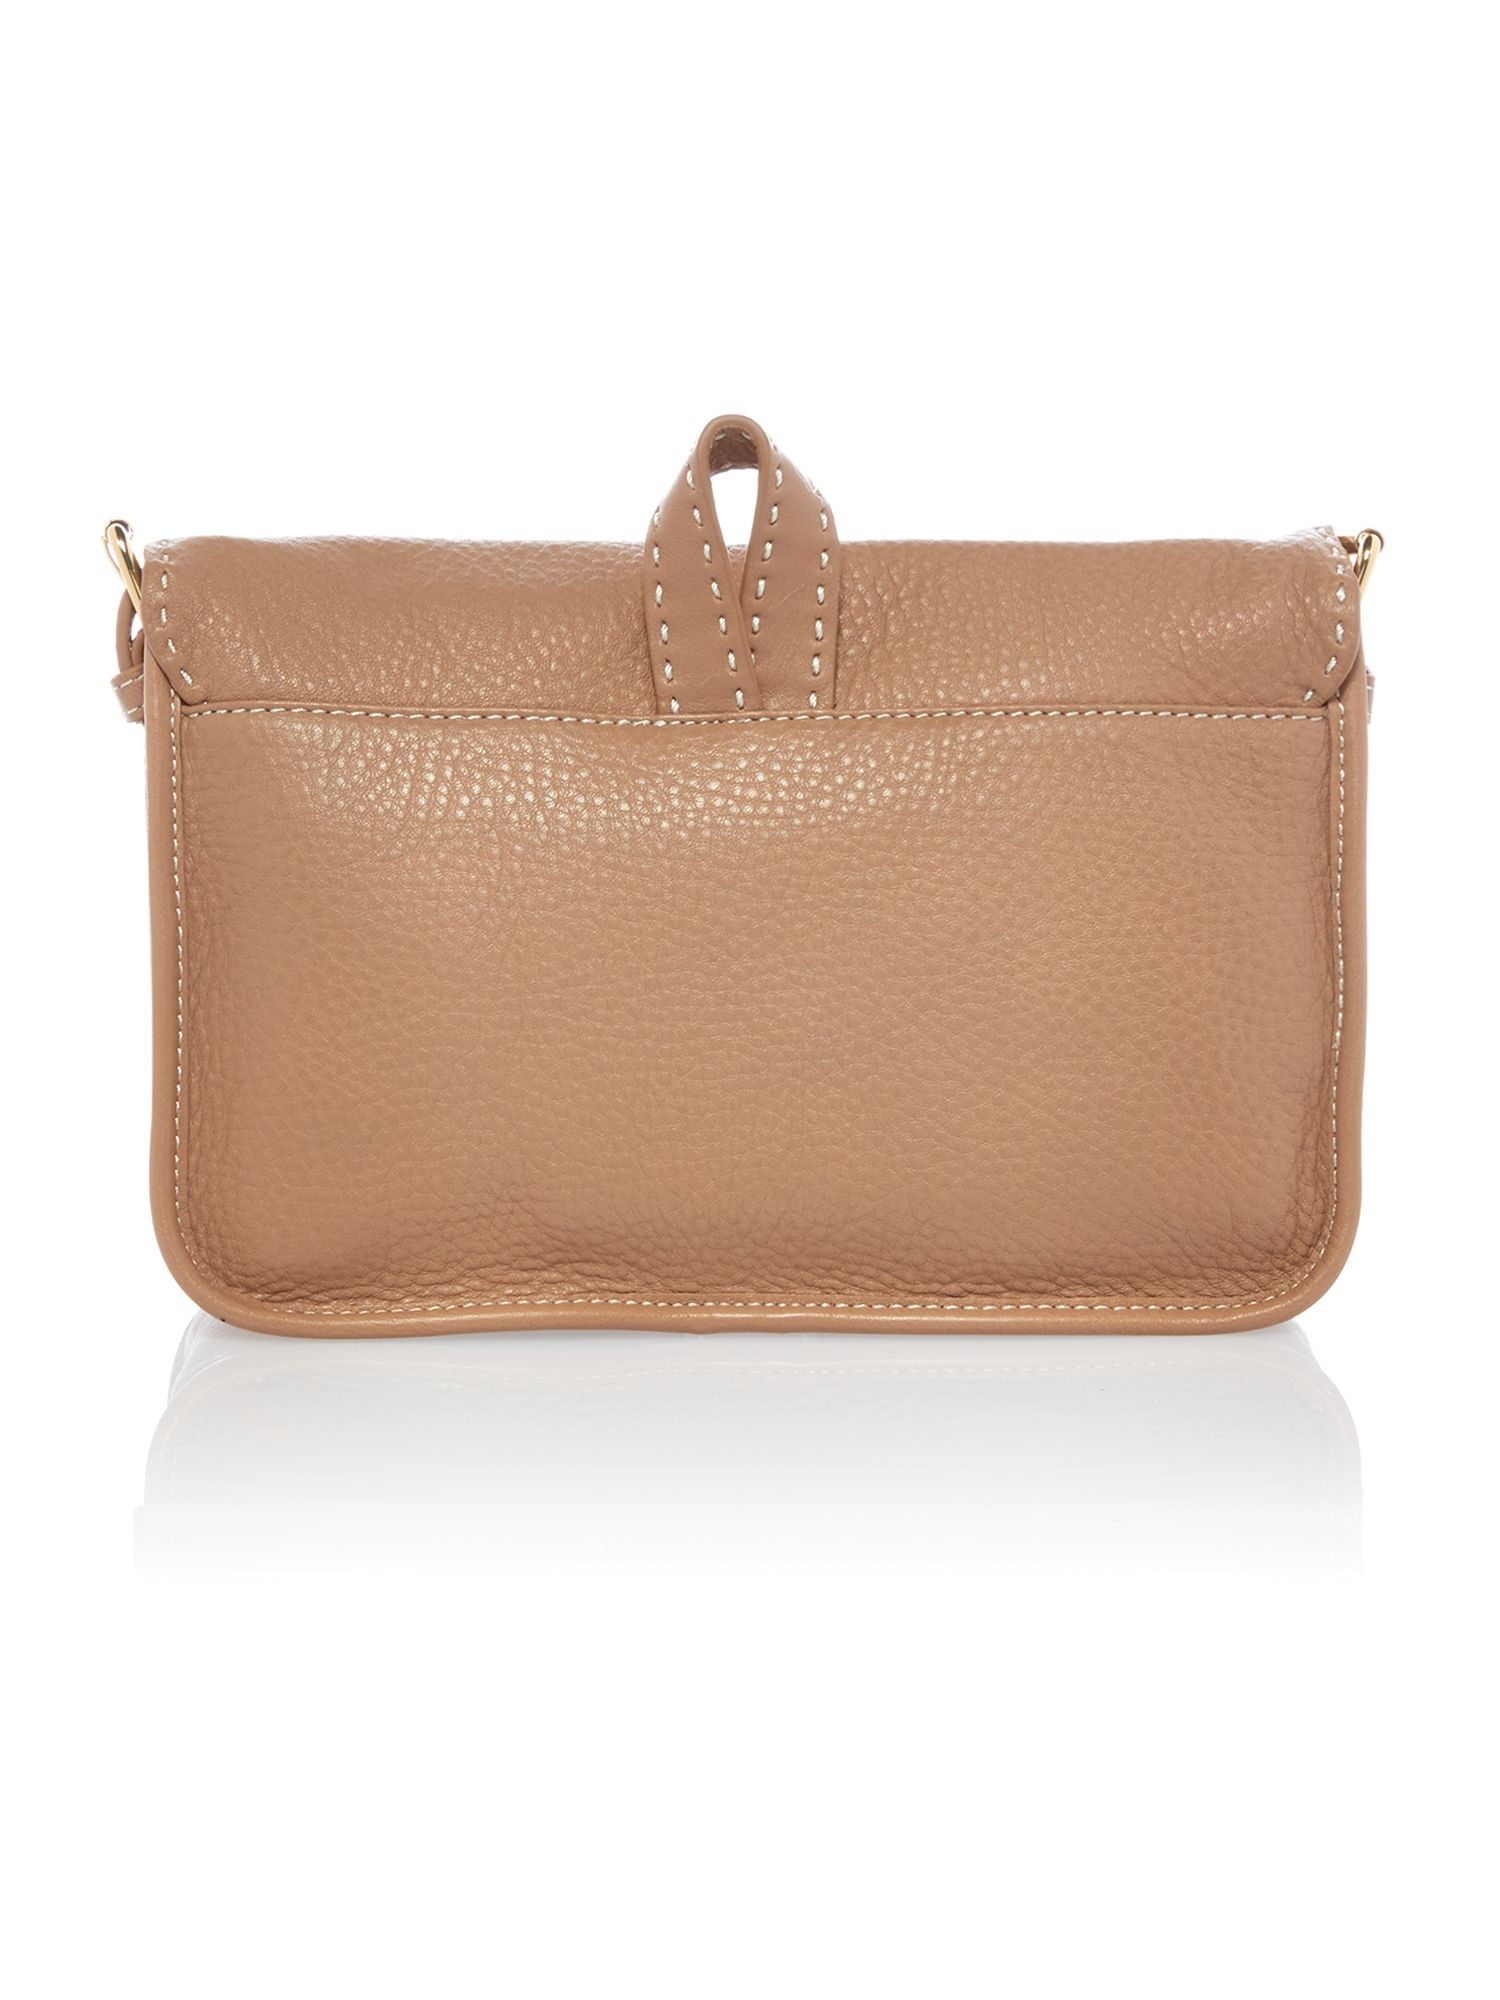 Medium neutral leather cross body bag